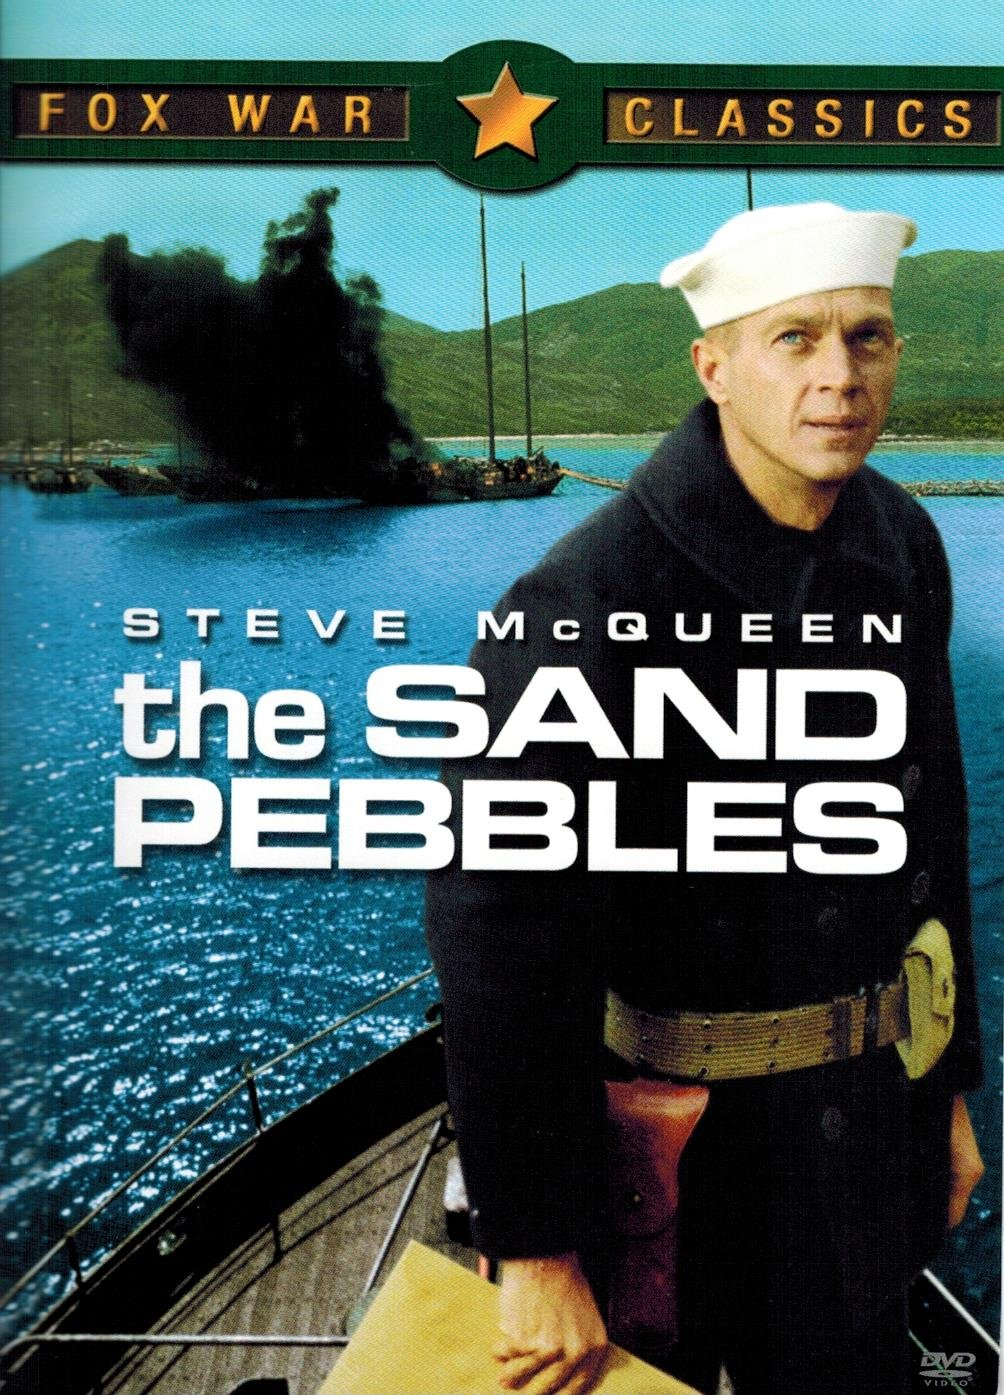 The Year-end gift Sand Pebbles sale